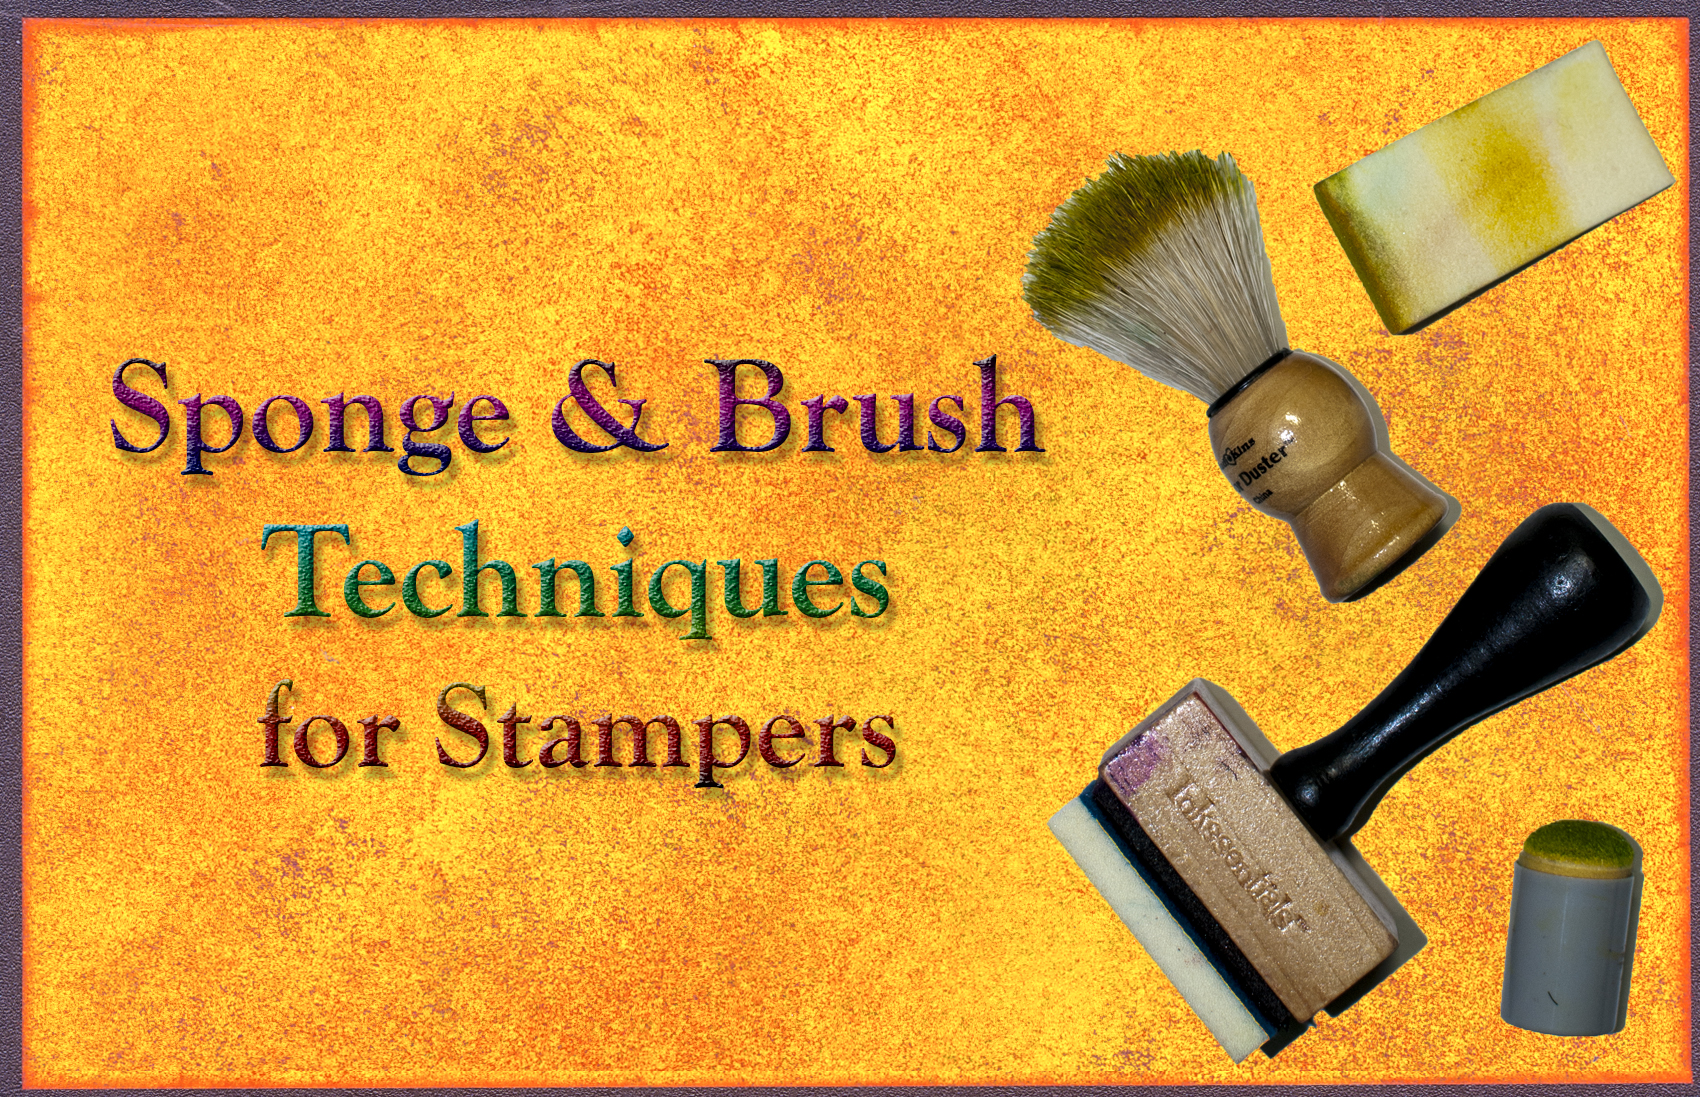 Sponge & Brush Techniques For Stampers Cover